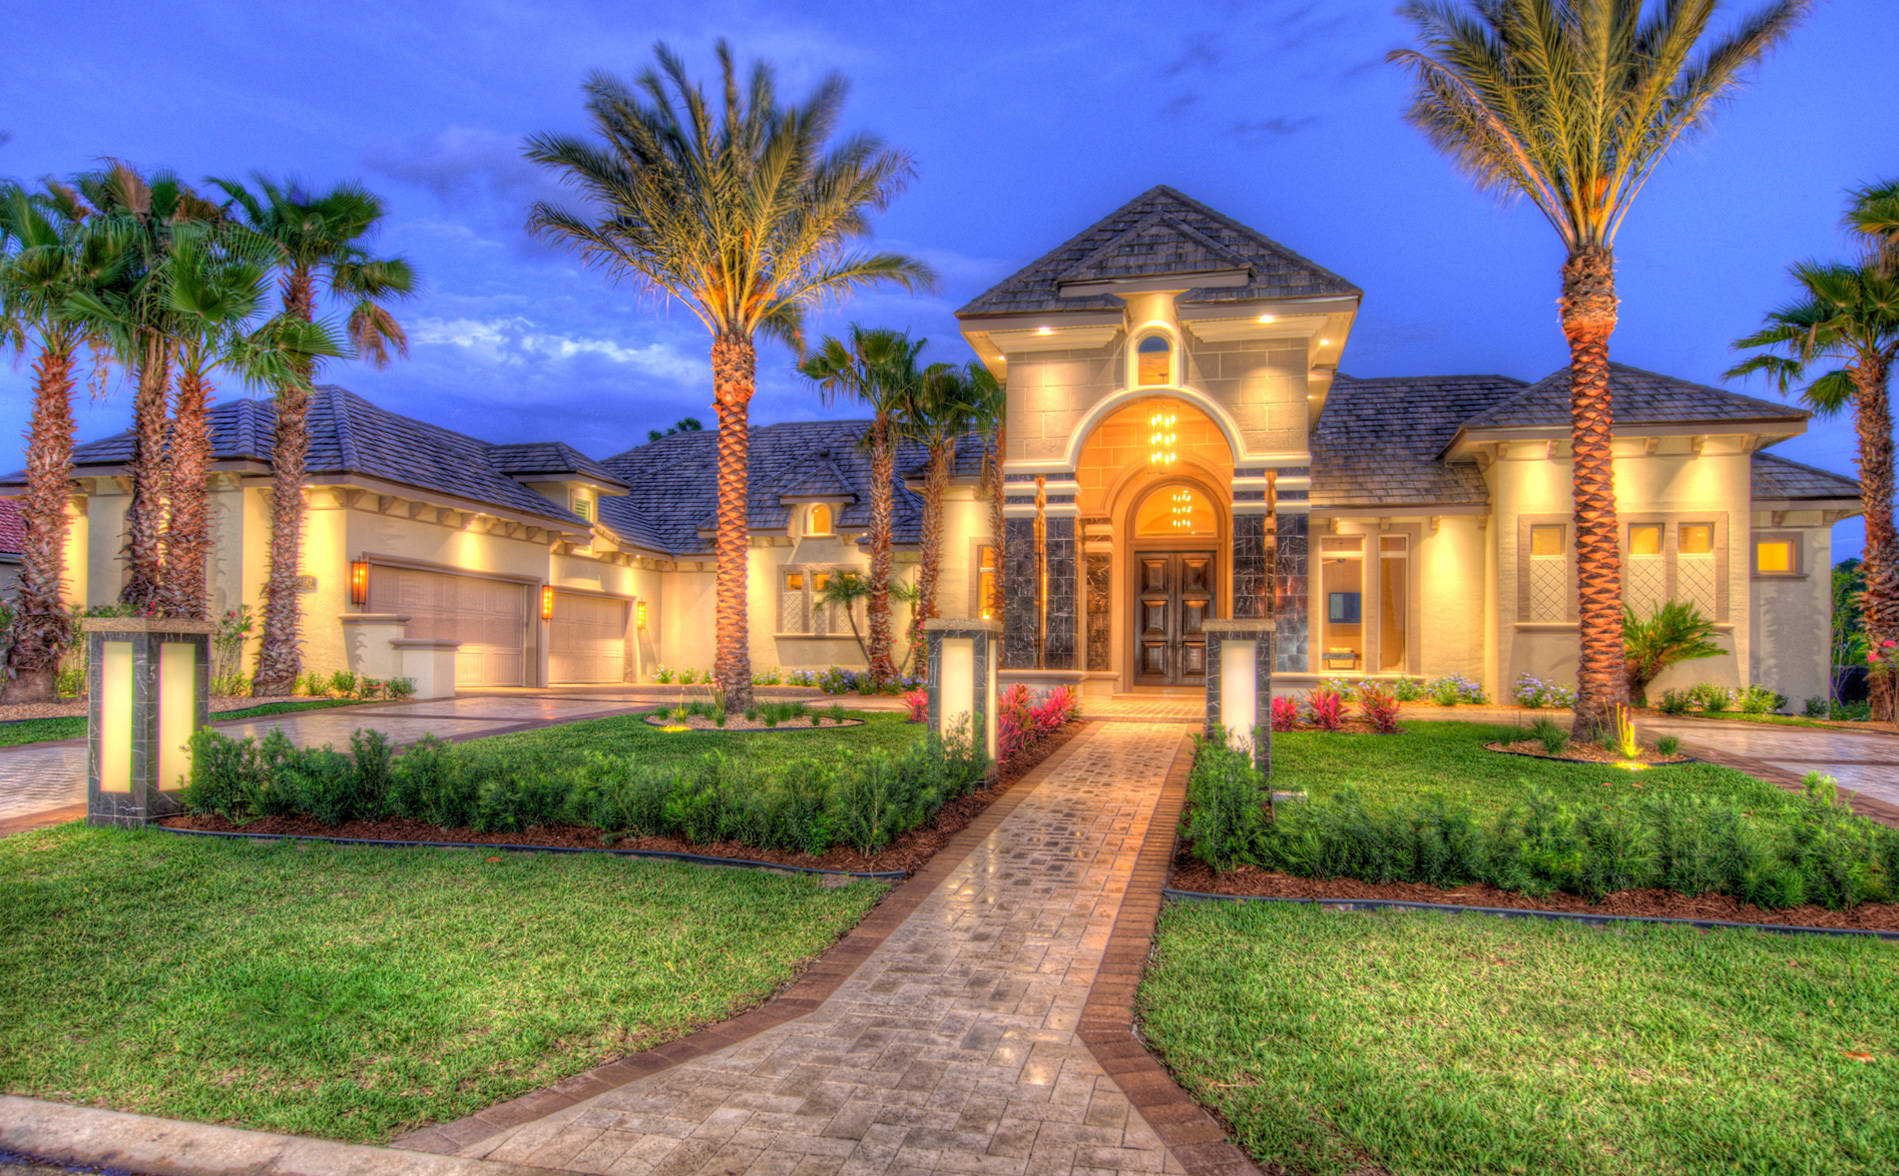 Plantation Bay Luxury Homes